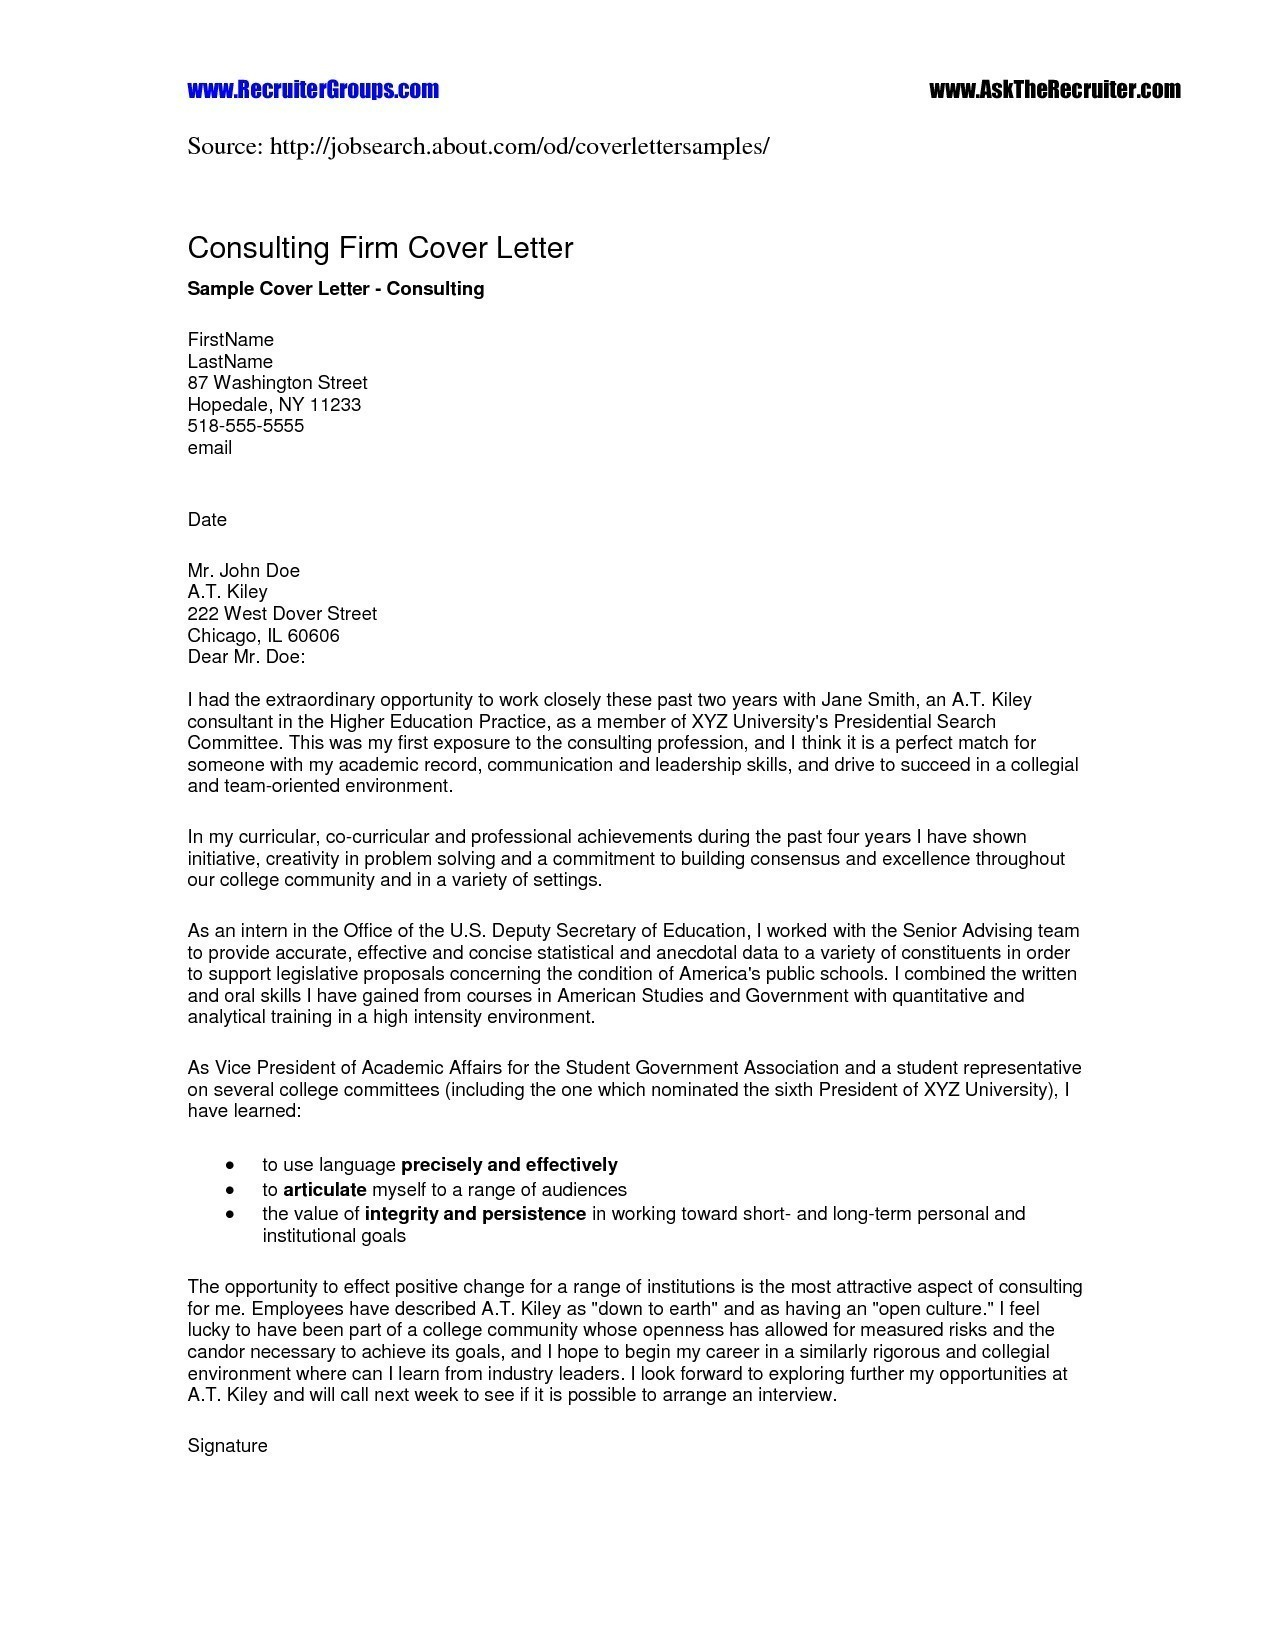 verification of employment letter sample template collection